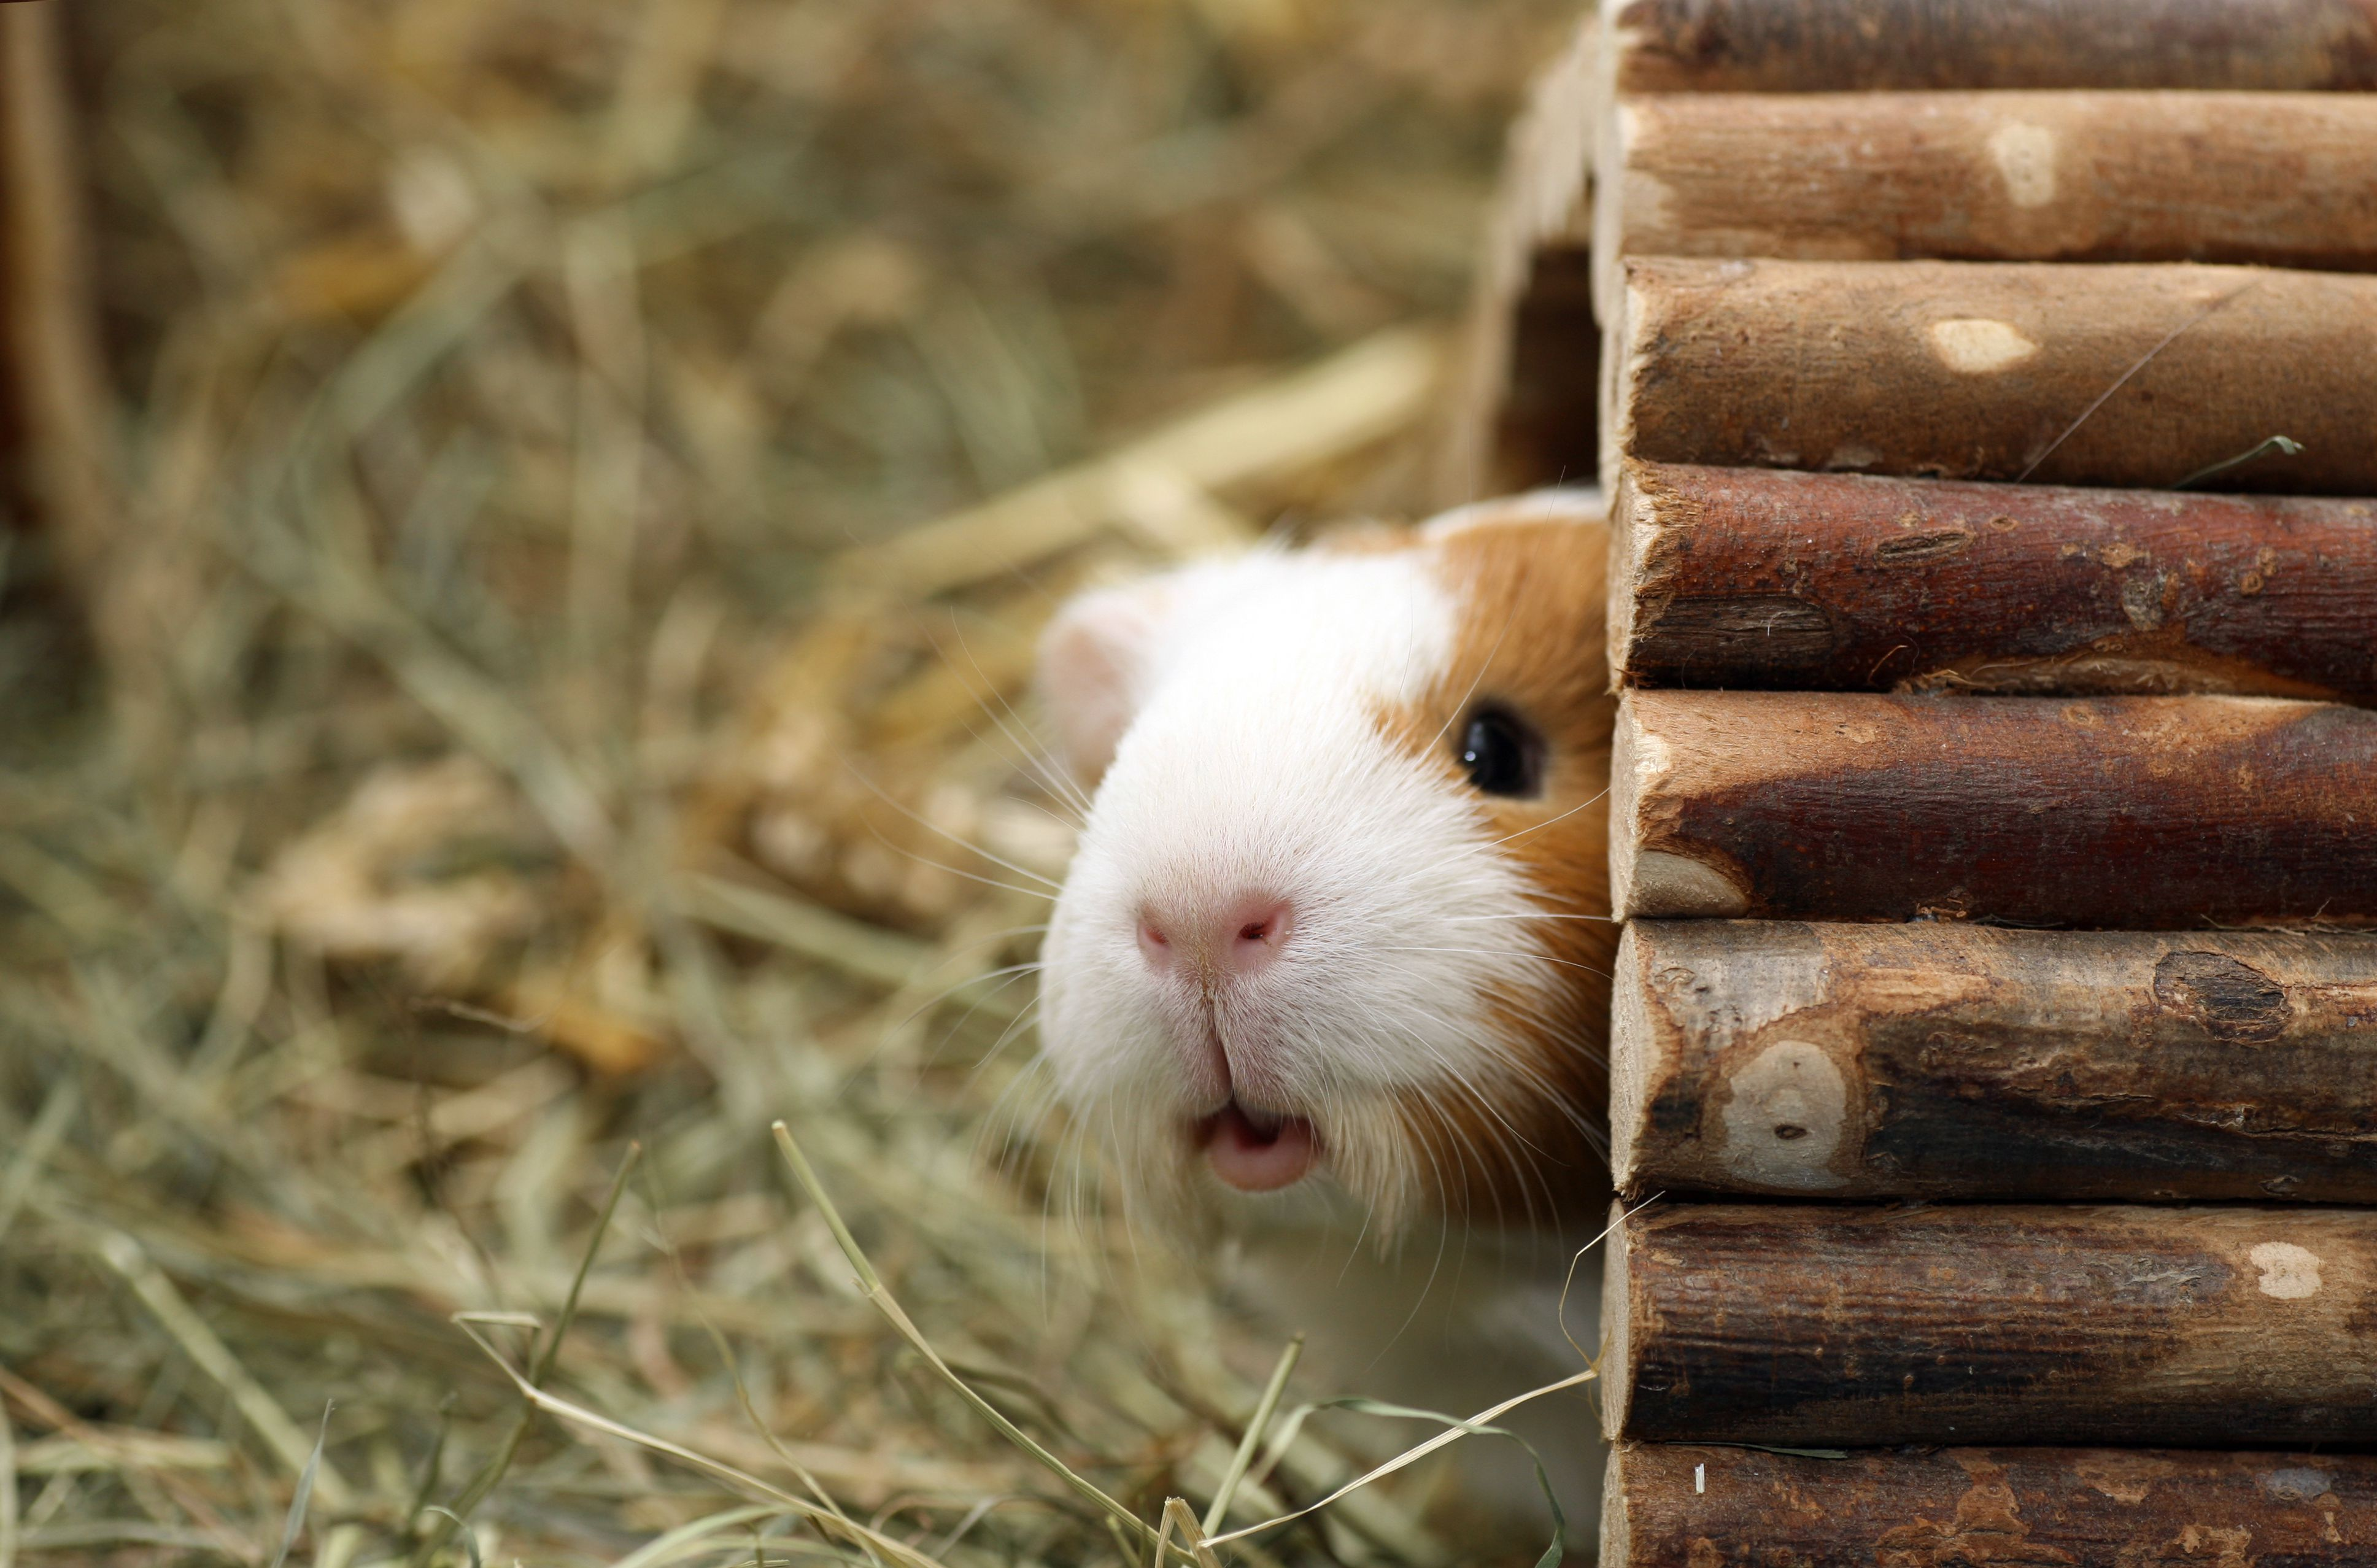 Things to Know Before Getting a Pet Guinea Pig